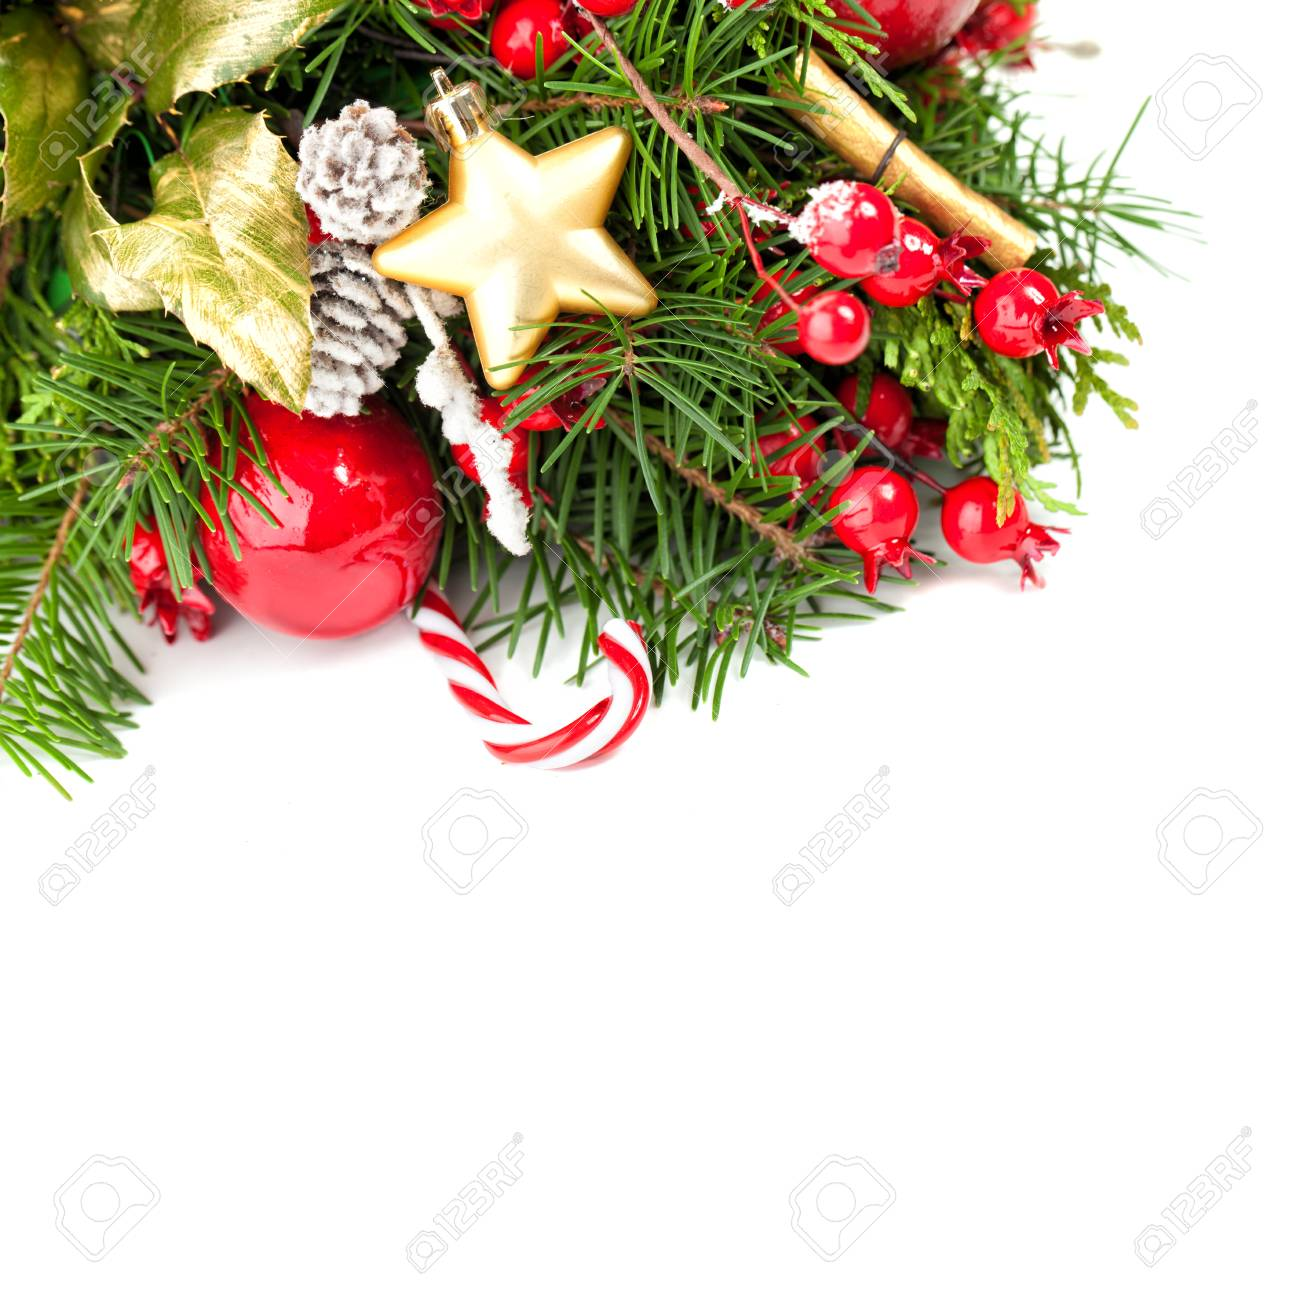 christmas border on white background new year or christmas background with xmas decor xmas